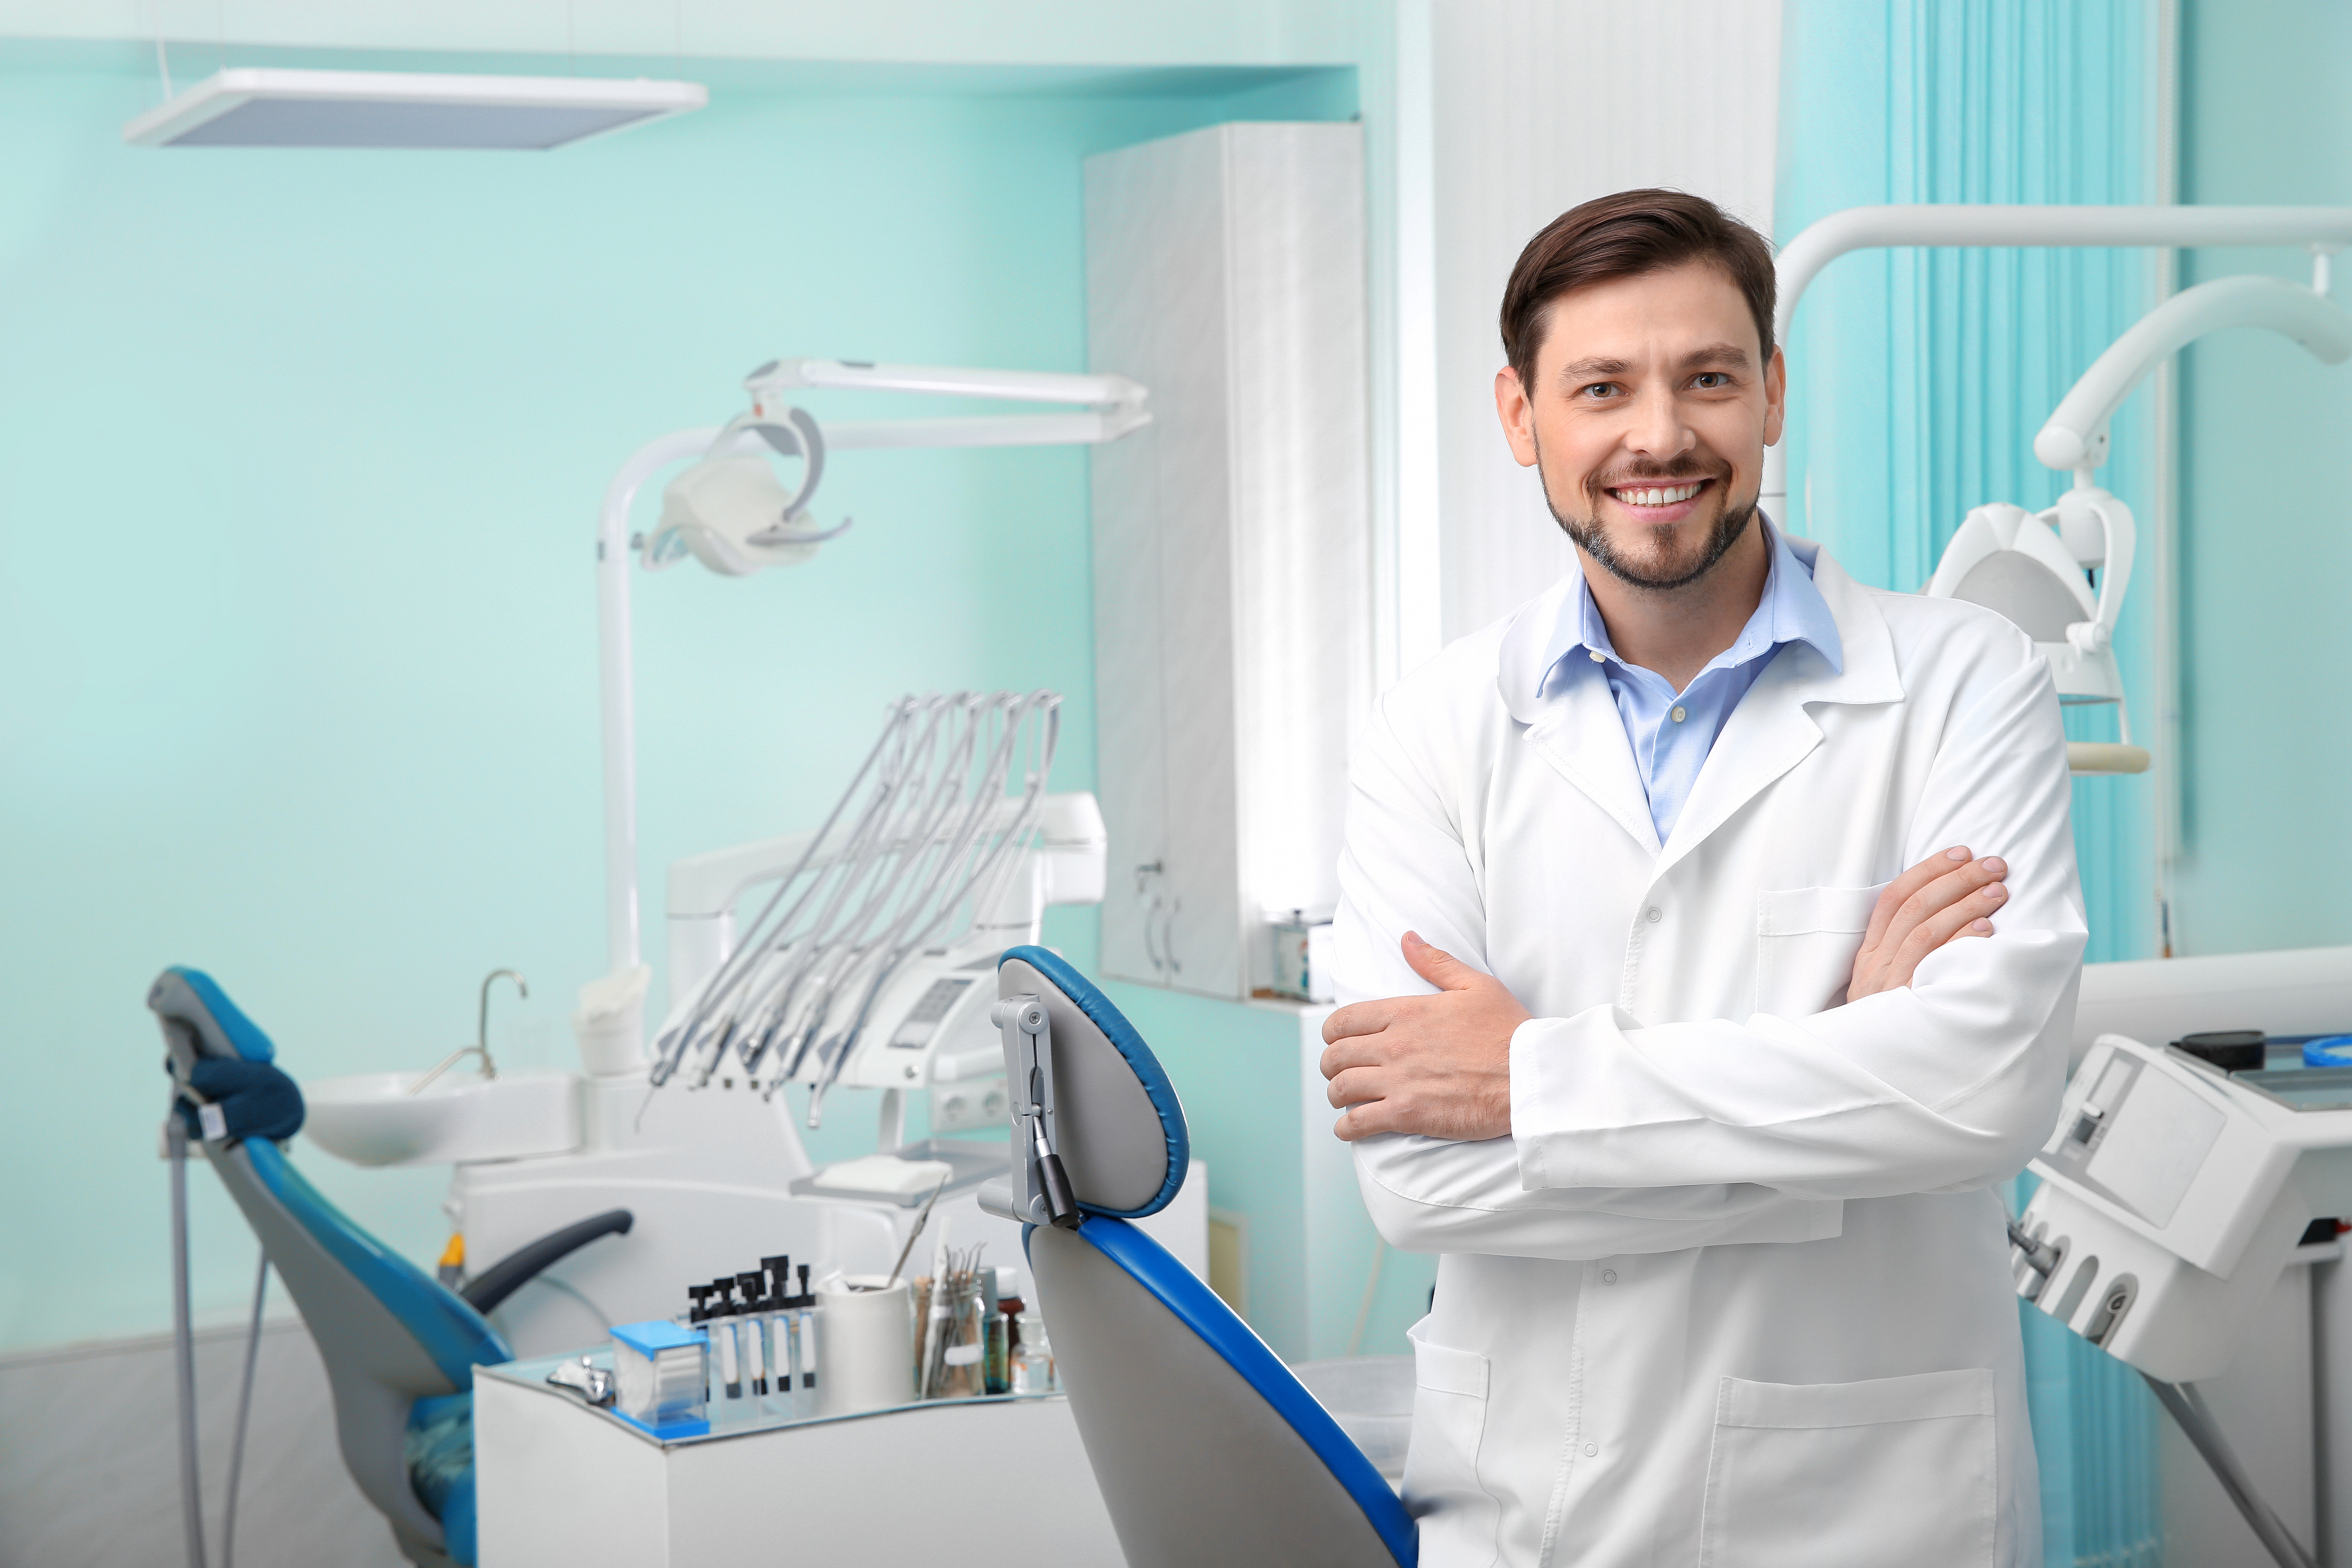 Dental Dress Code What Should Dentists Wear to Work